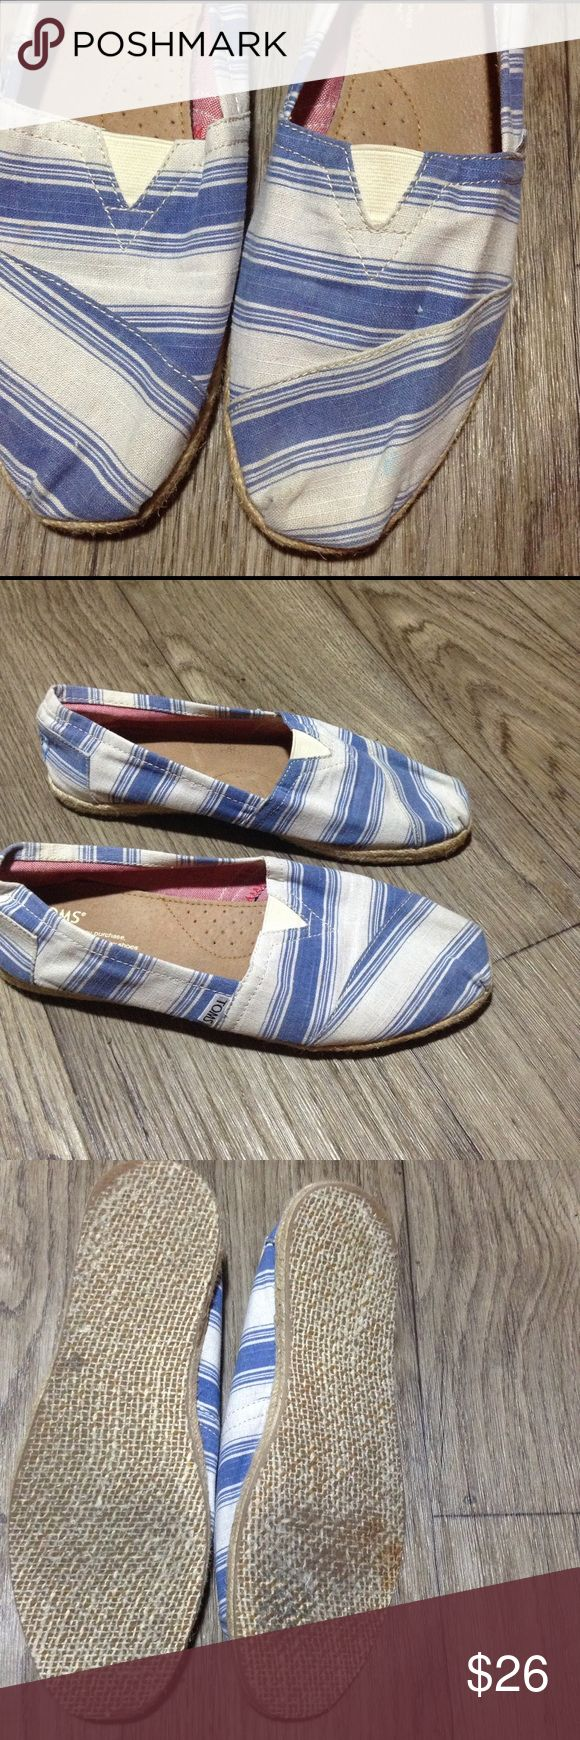 Toms blue/white striped print straw soles Sz 10 Toms blue/white stripes with straw soles size 10 women. Have a stain on front left shoe and some wear but still have lots of life. TOMS Shoes Espadrilles